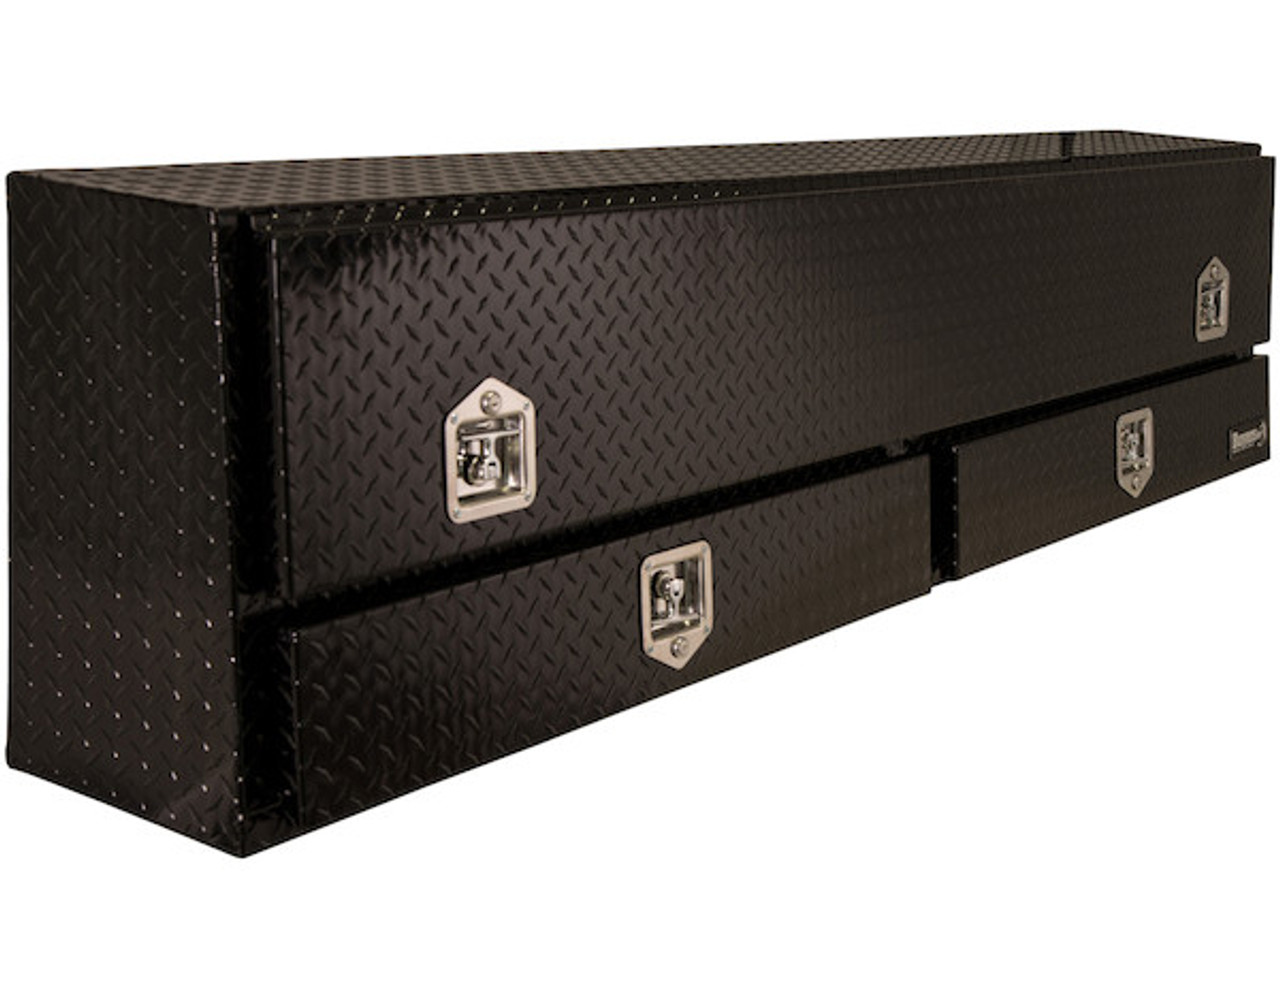 "1725651 BUYERS PRODUCTS BLACK DIAMOND TREAD ALUMINUM CONTRACTOR TRUCK BOX WITH LOWER DRAWERS 21""HX13.5""DX88""W"